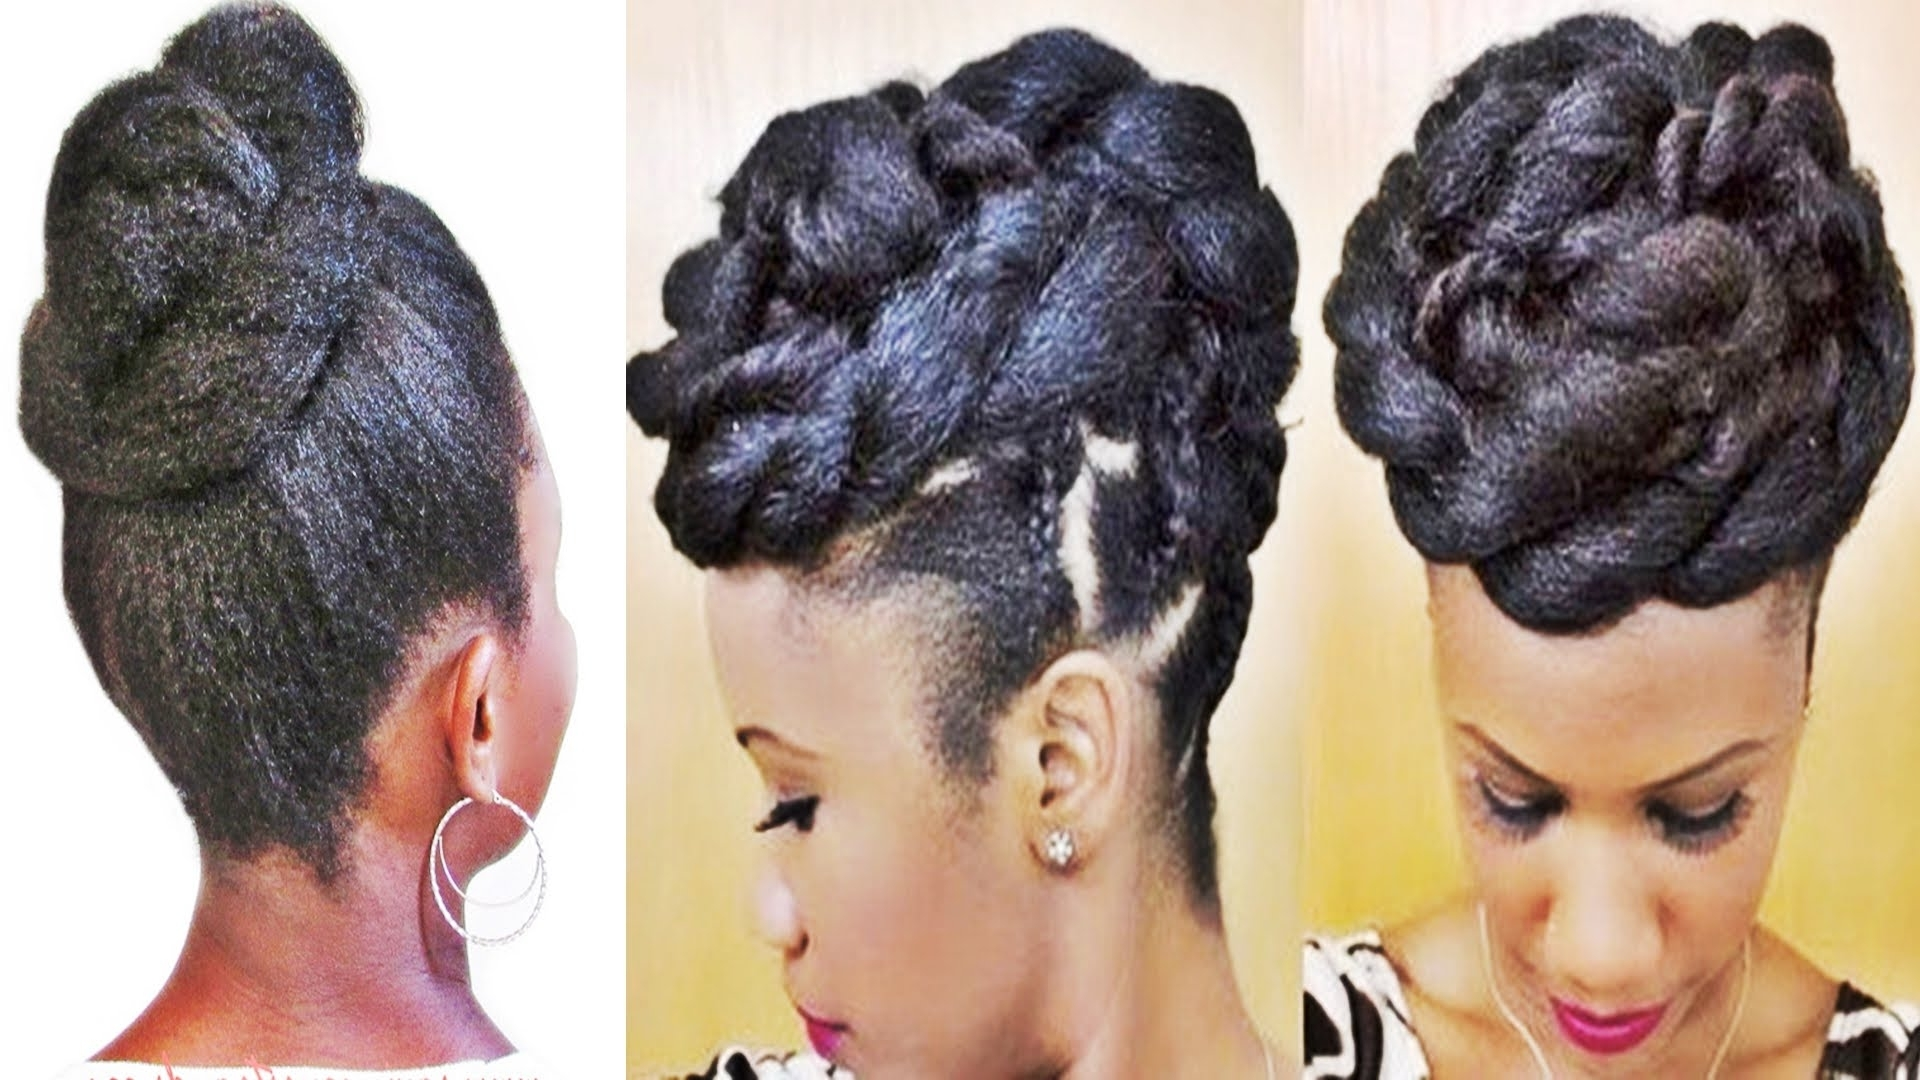 Braids And Twists Updo Hairstyle For Black Women – Youtube Inside Women's Updo Hairstyles (View 2 of 15)